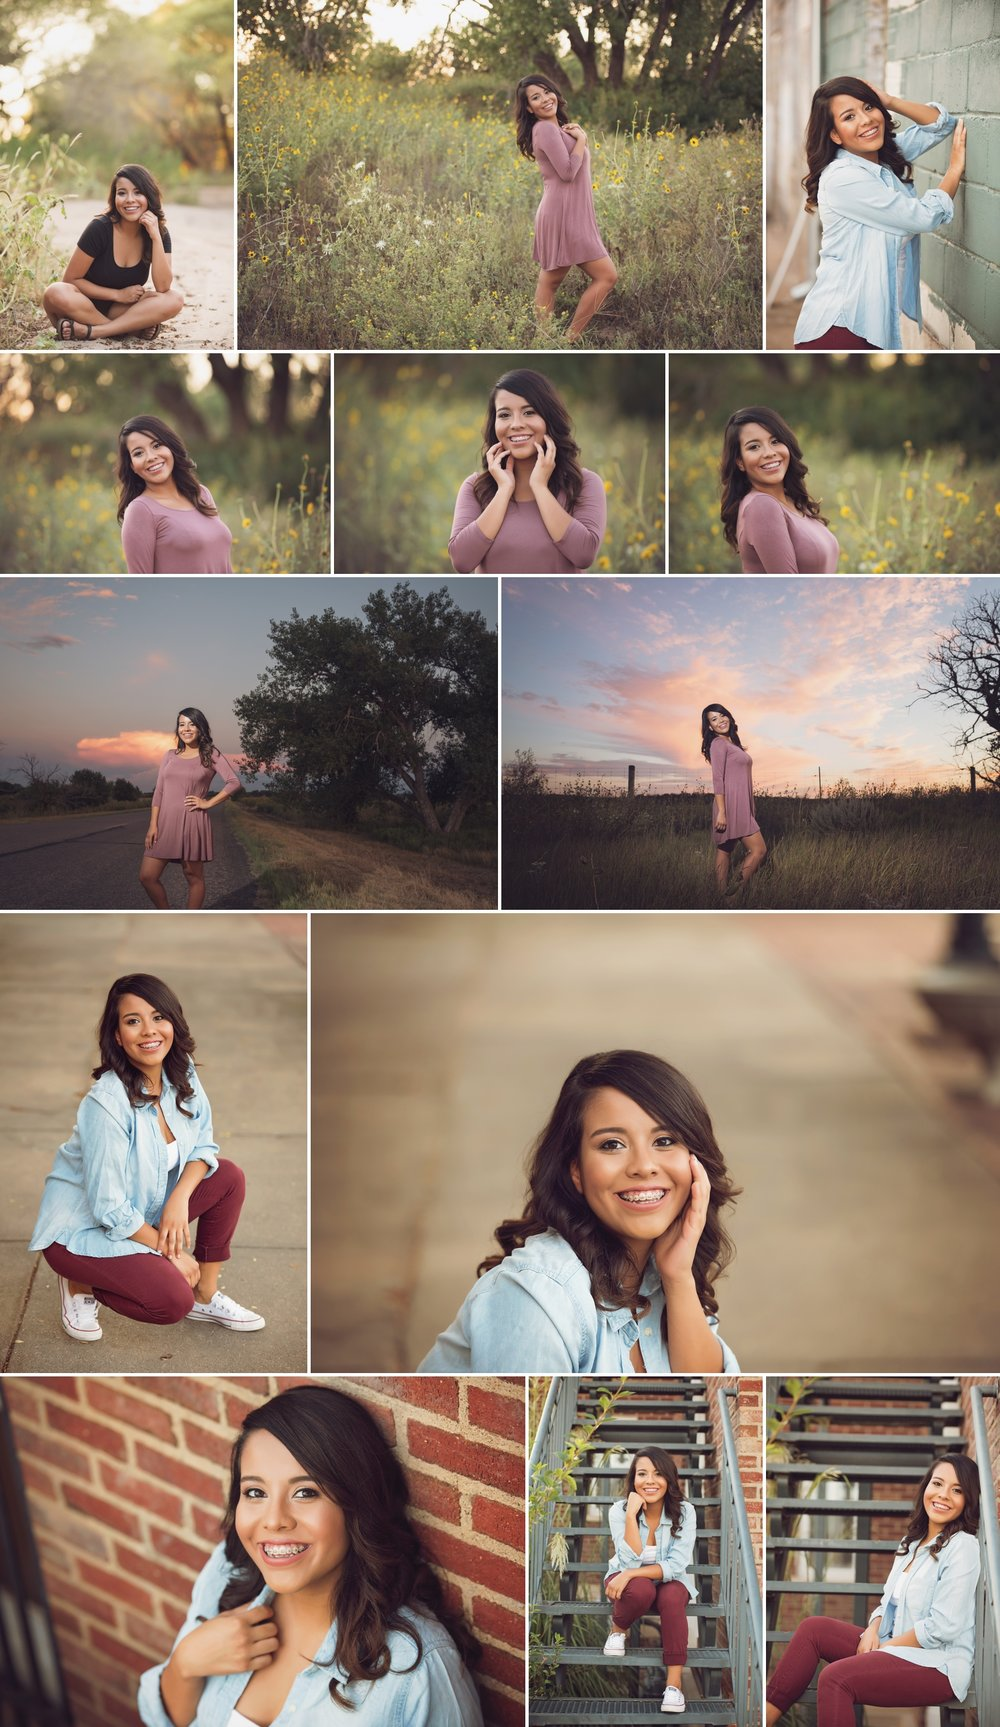 southwest-kansas-senior-photography 2.jpg